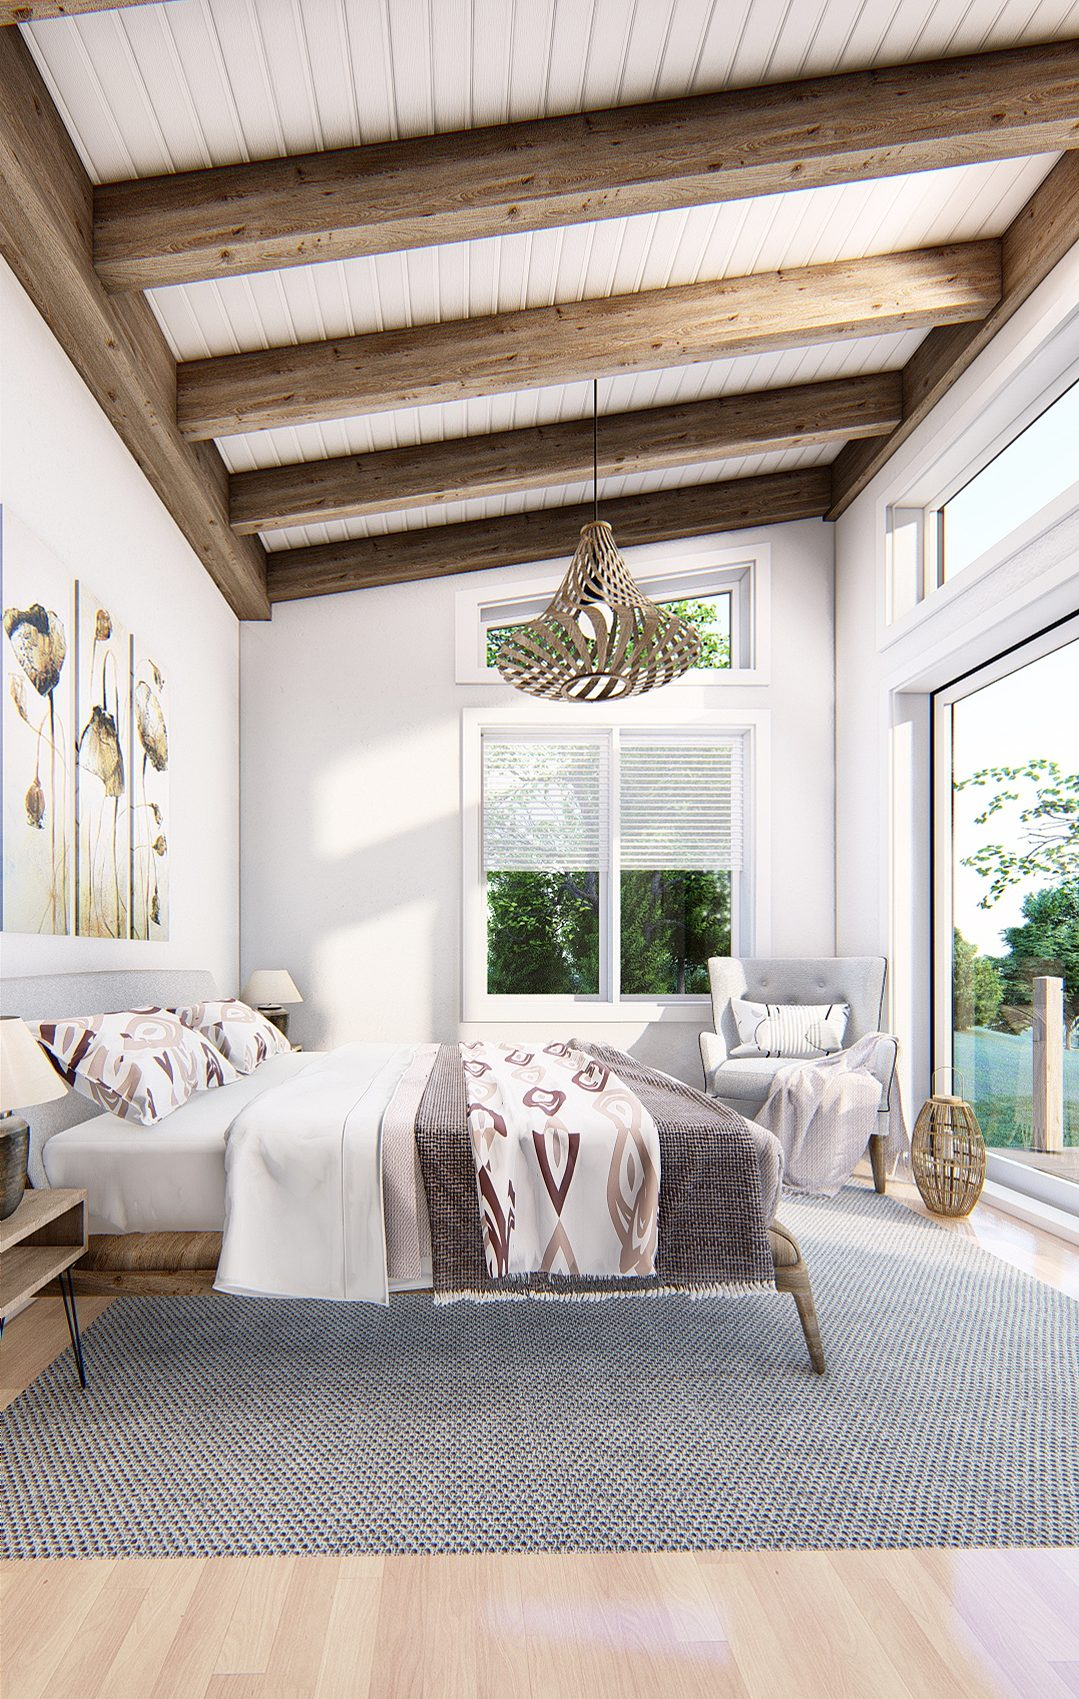 Normerica Timber Frames, House Plan, The Laurentian, Interior, Bedroom